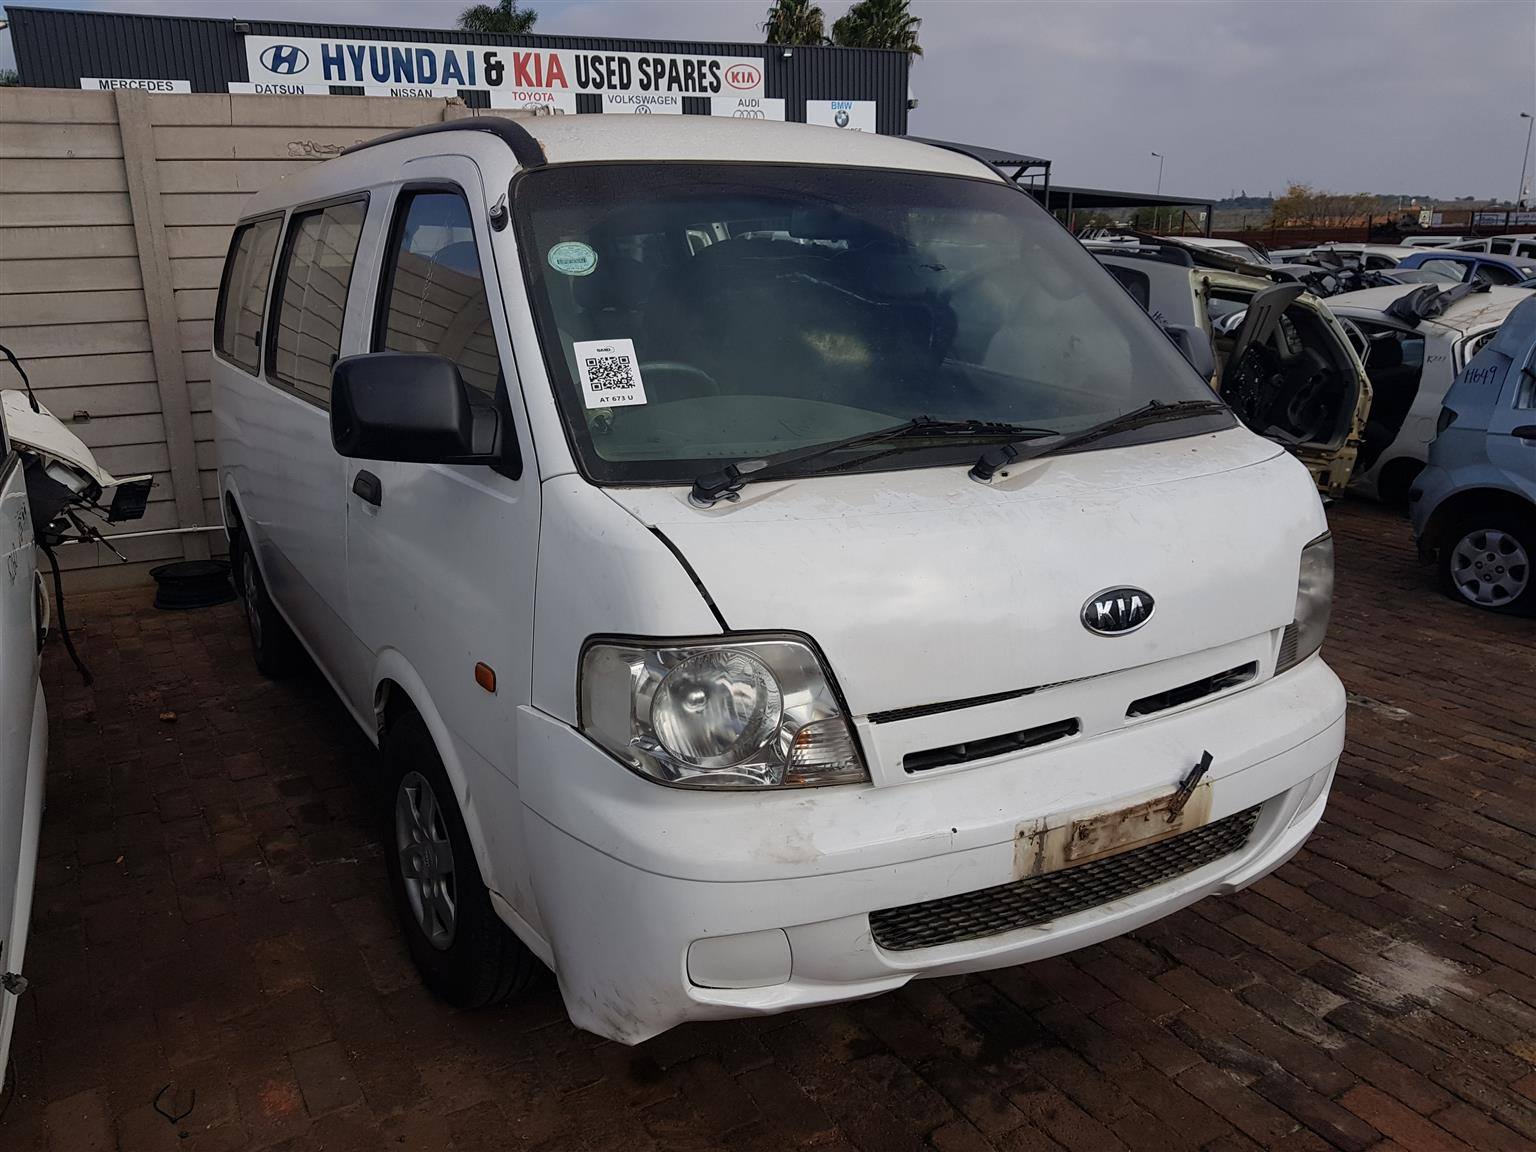 Kia pregio 2.7 2006 model now for stripping of all parts.